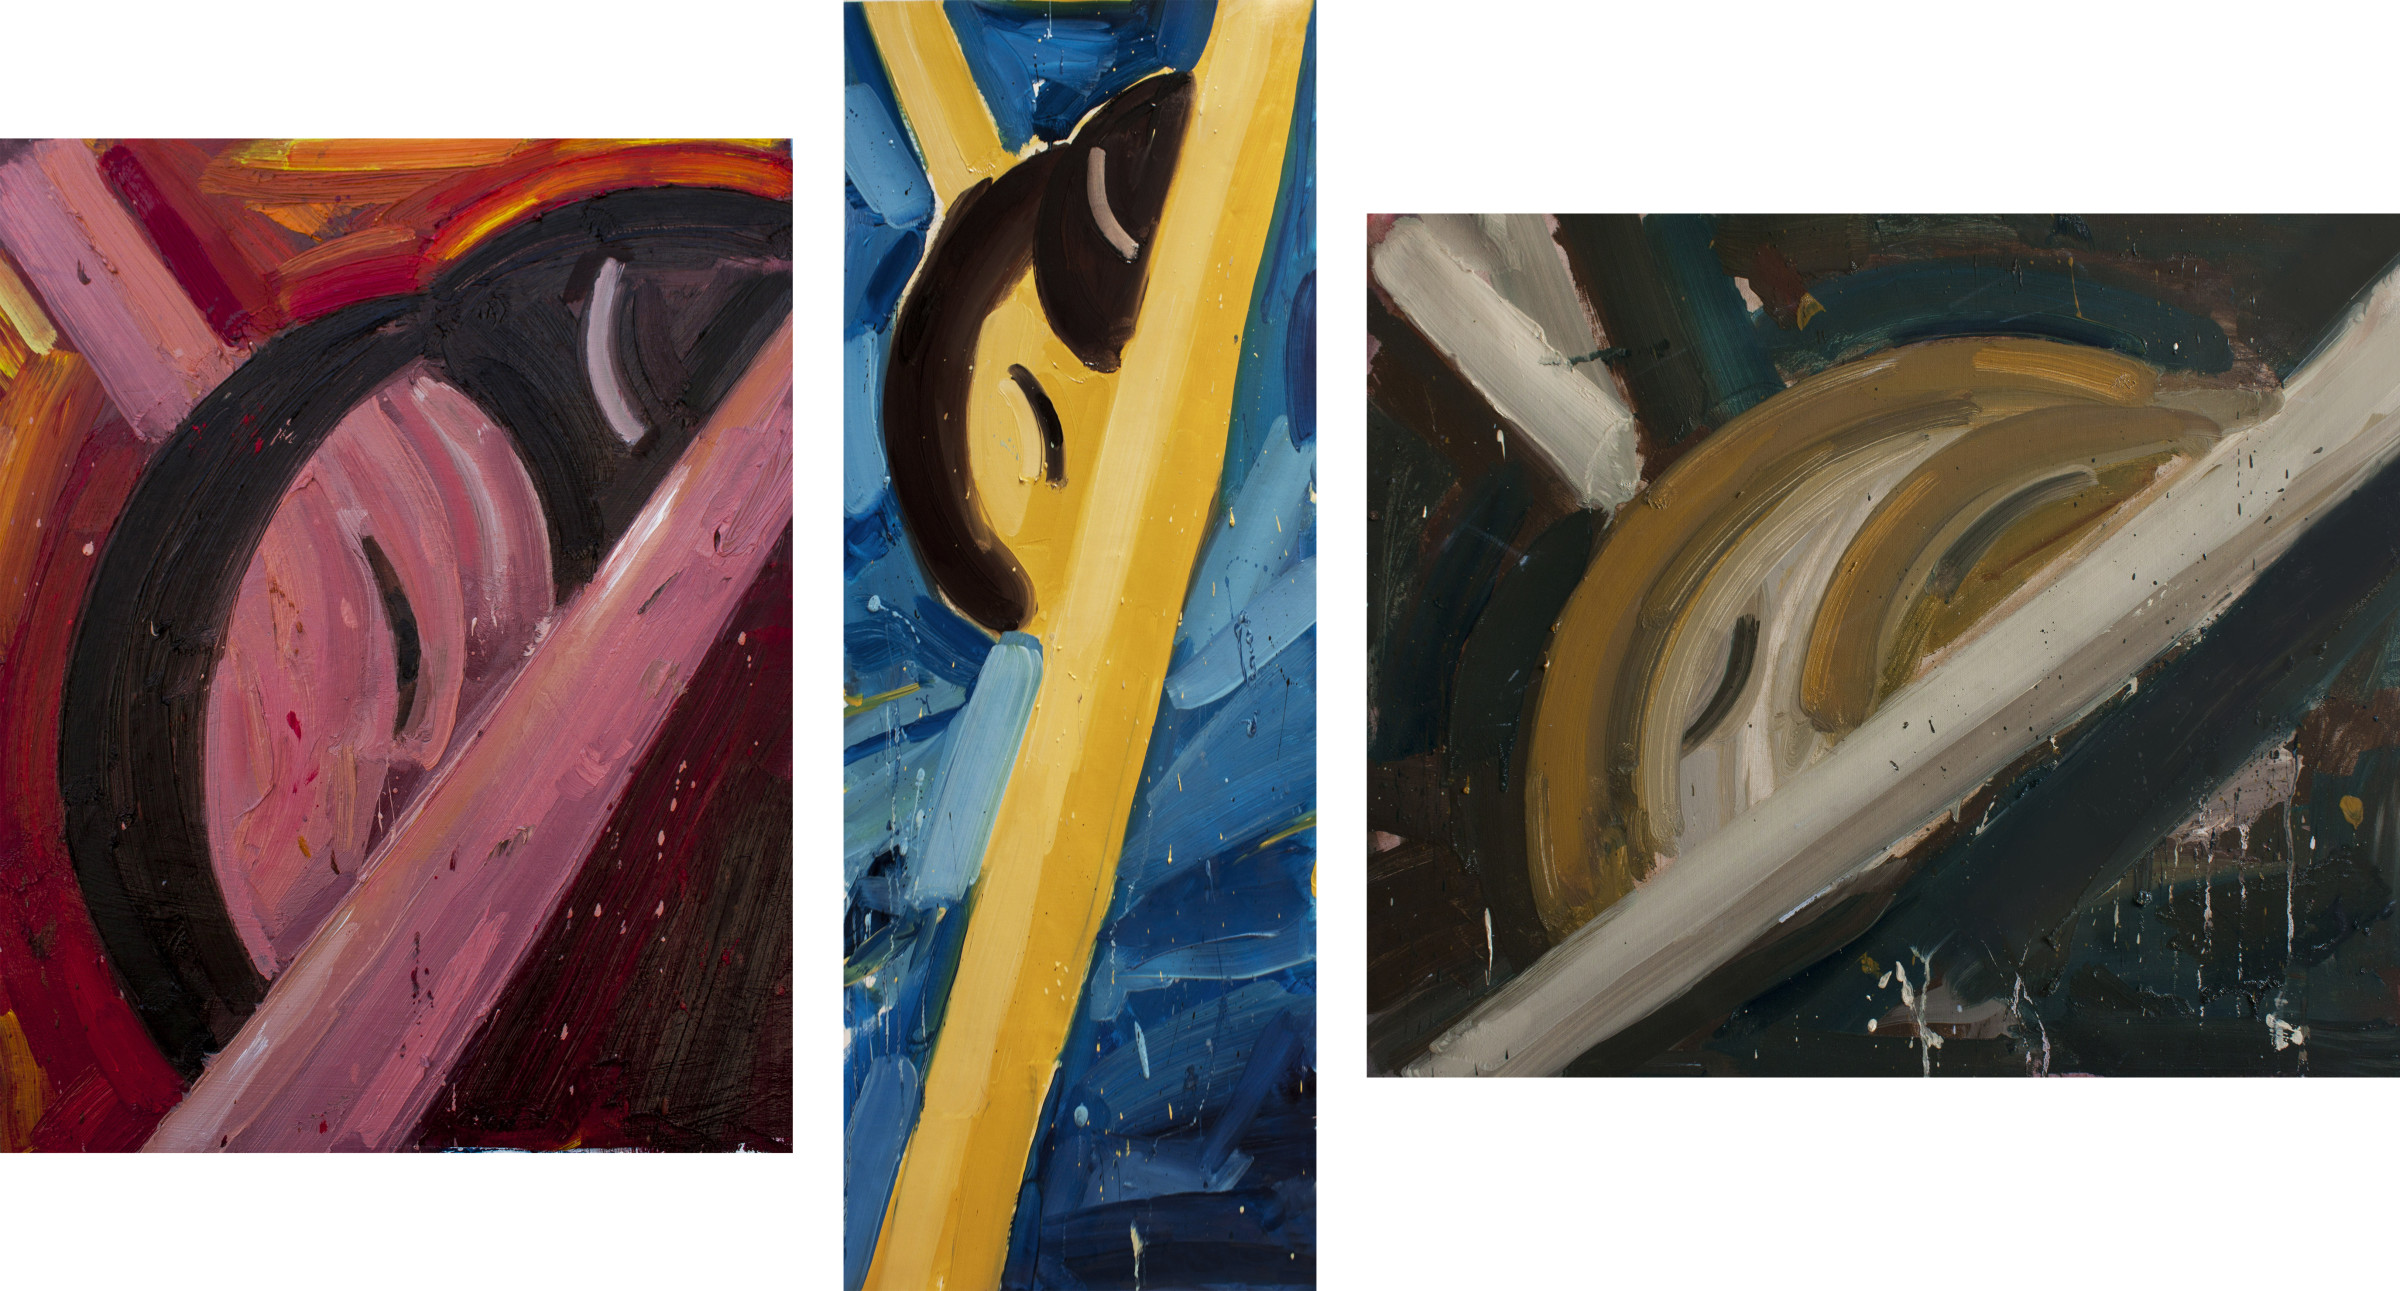 """<span class=""""link fancybox-details-link""""><a href=""""/exhibitions/91/works/artworks2257/"""">View Detail Page</a></span><div class=""""medium"""">Oil on canvas</div> <div class=""""dimensions"""">Triptych<br /> <br /> 50 x 61 cm<br /> 19 3/4 x 24 1/8 in<br /> <br /> 100 x 36 cm<br /> 39 3/8 x 14 1/8 in<br /> <br /> 35 x 29 cm<br /> 13 3/4 x 11 3/8 in</div>"""